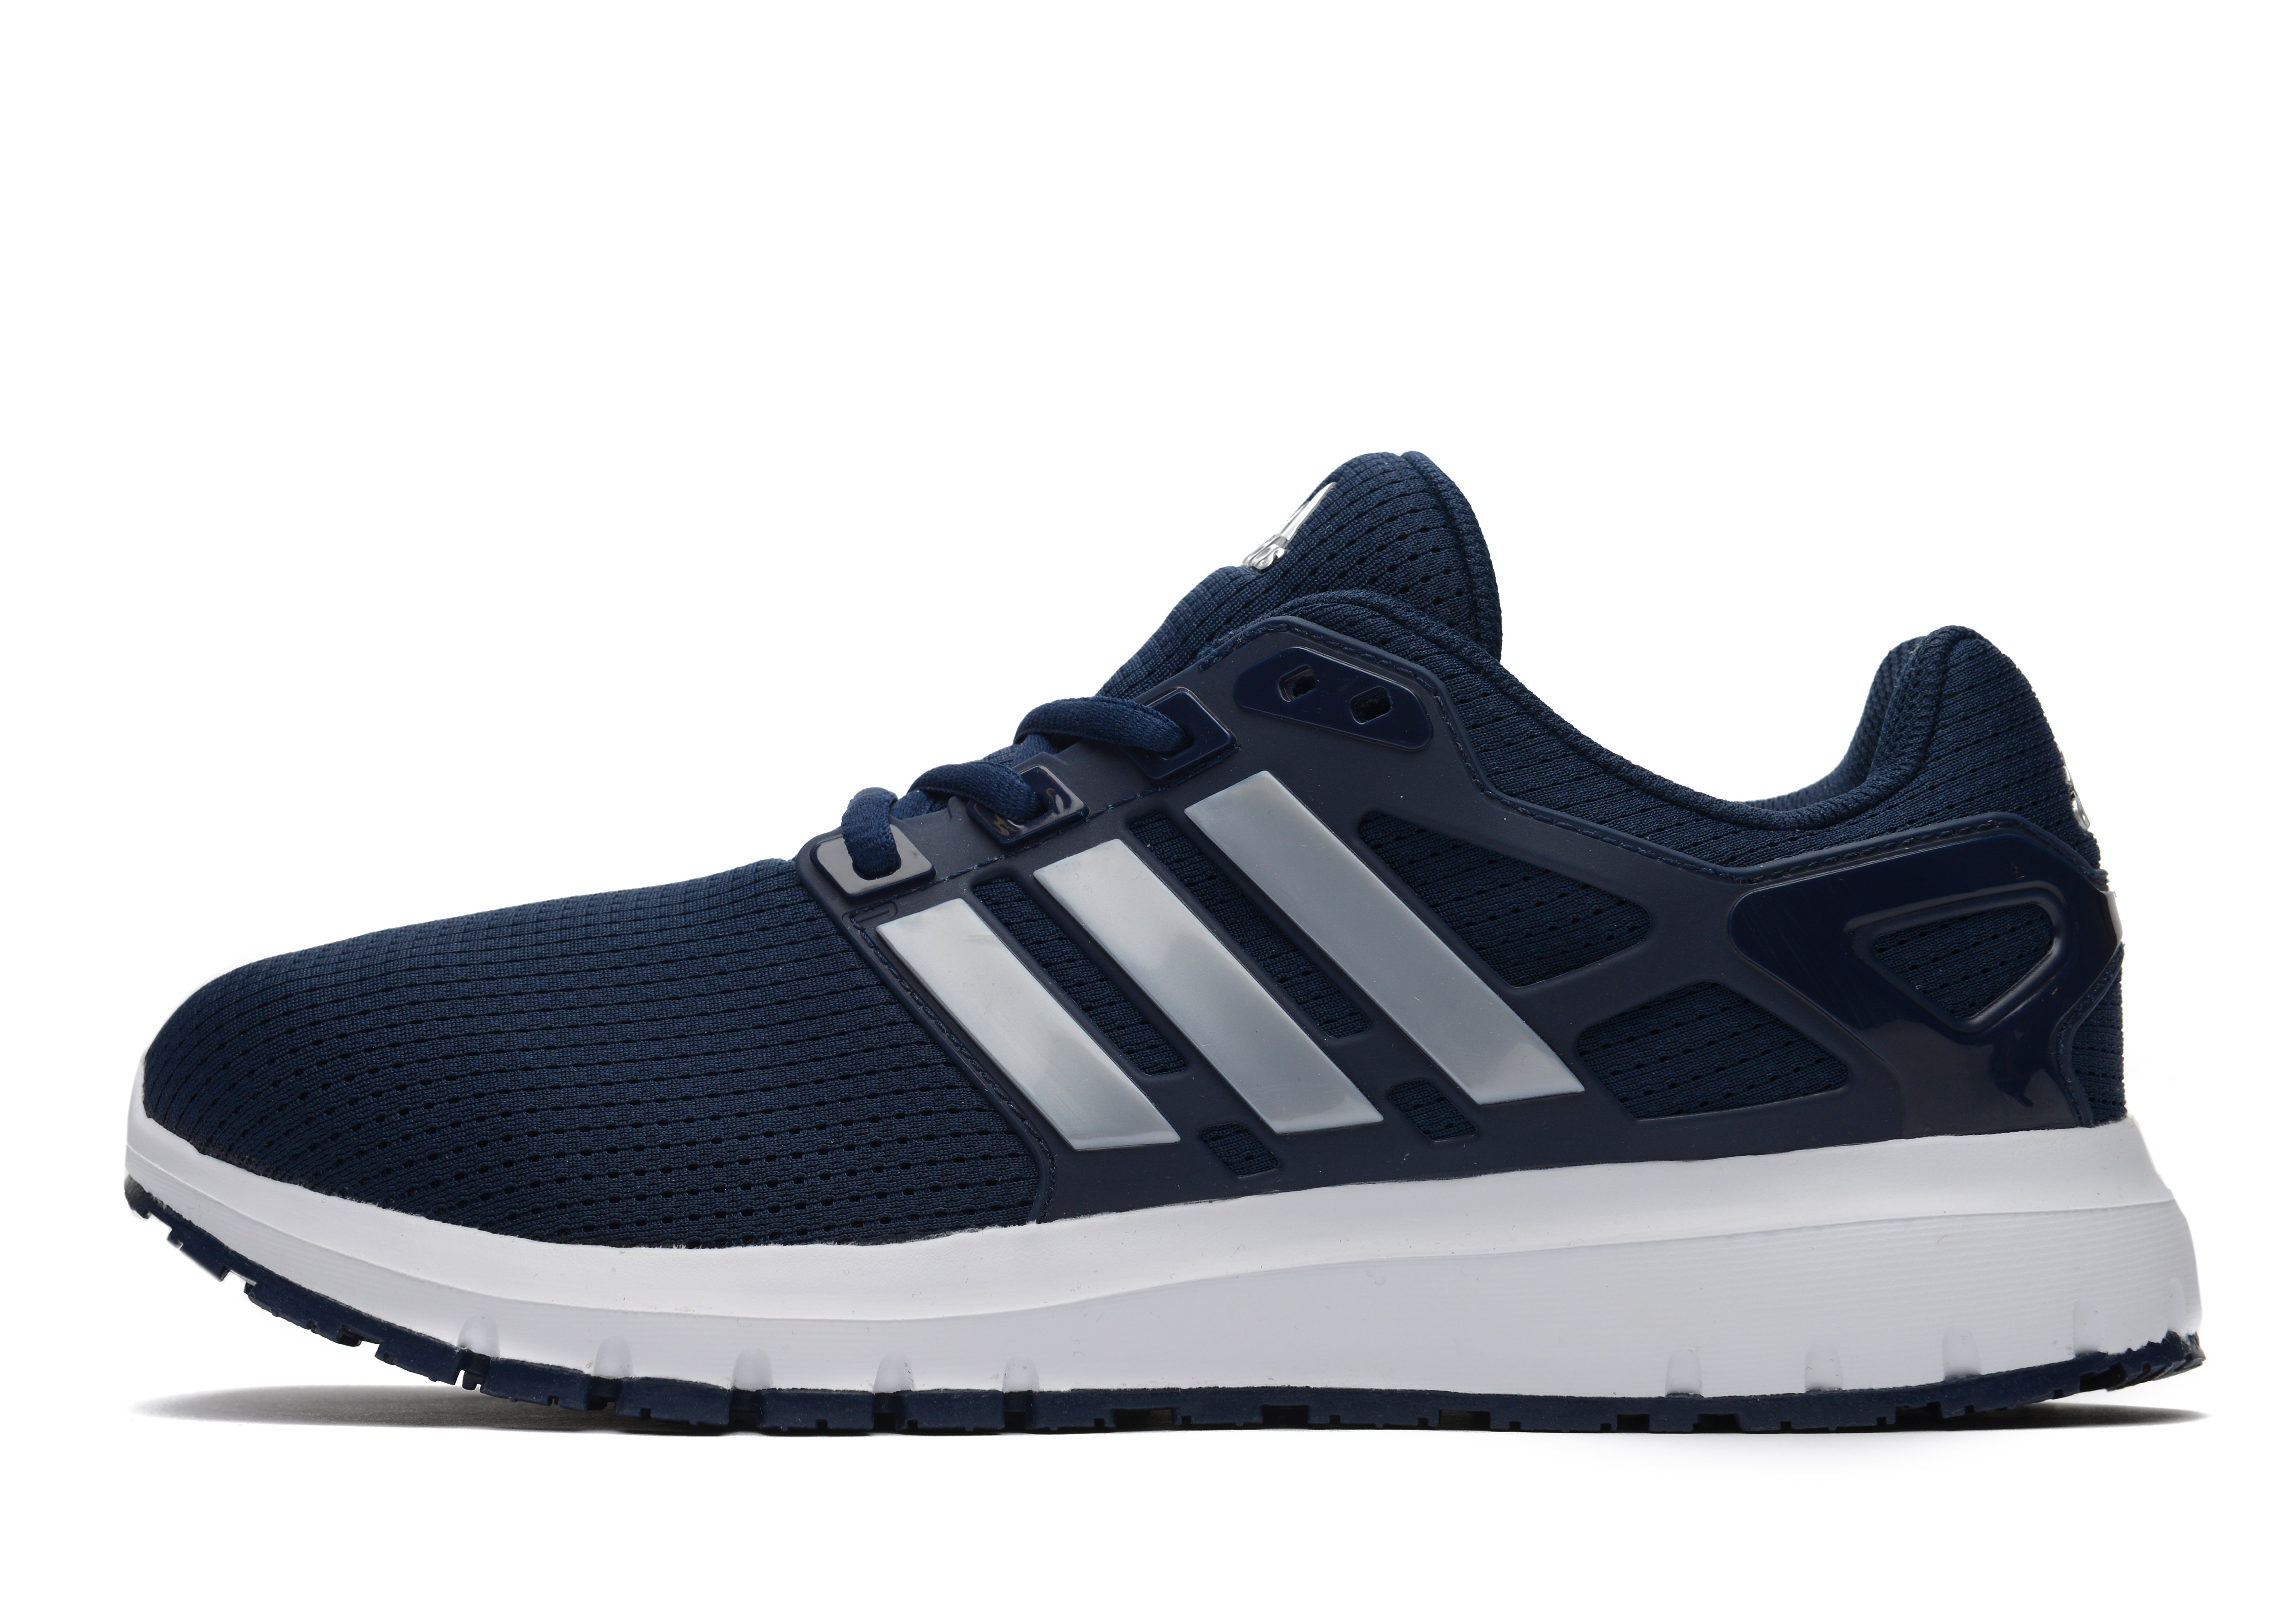 adidas running shoes images ,adidas custom soccer cleats